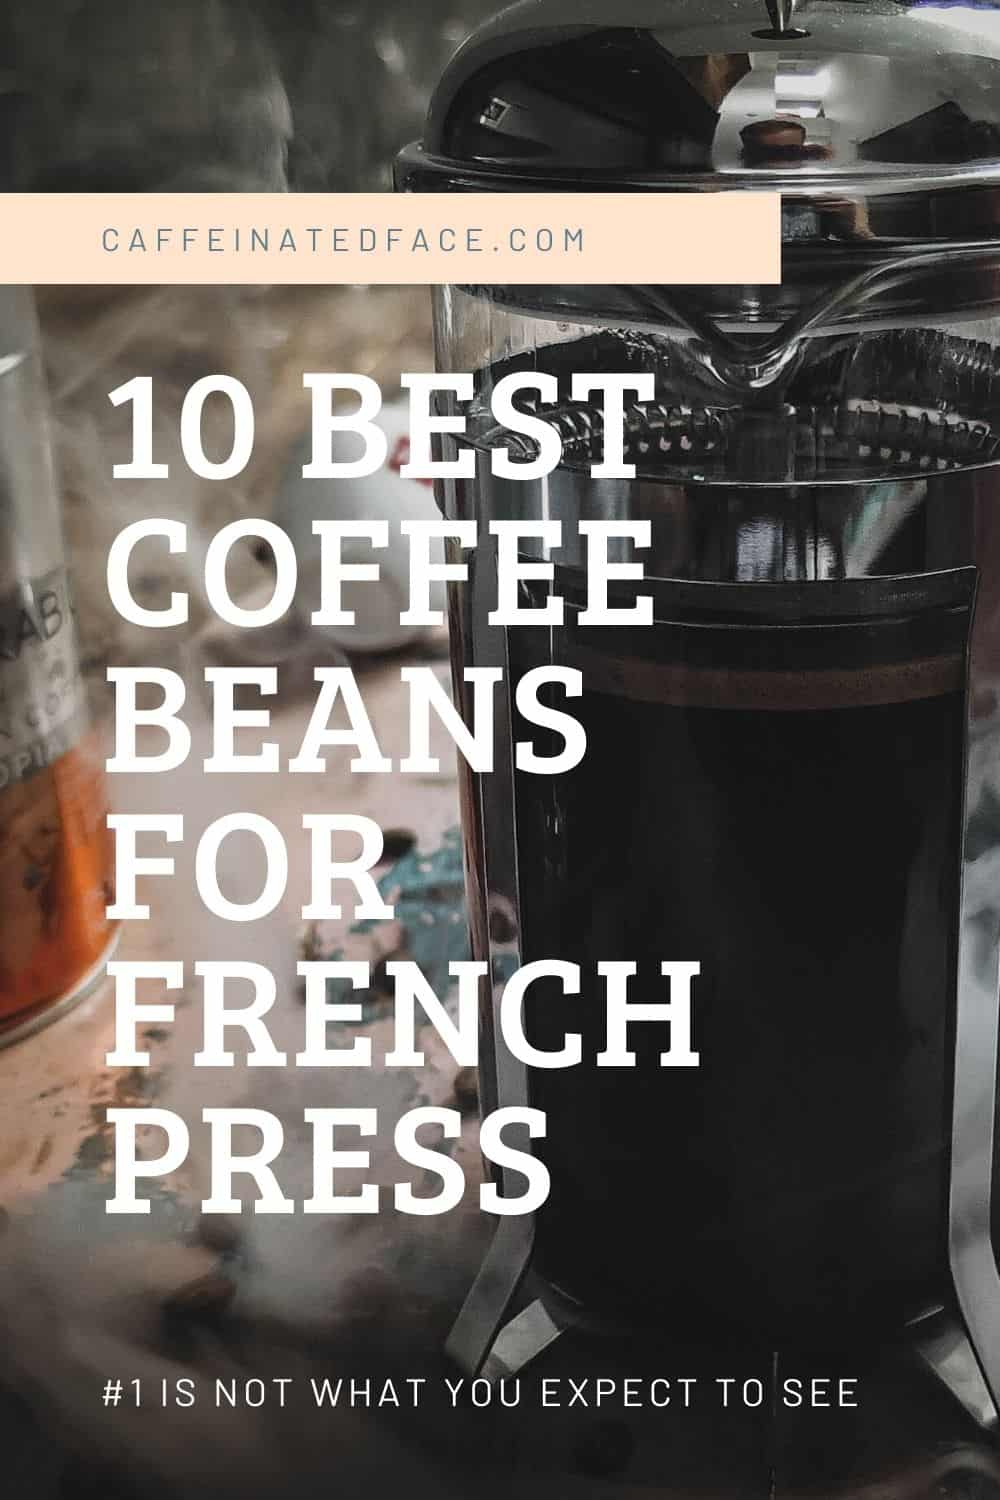 BEST COFFEE BEANS FOR FRENCH PRESS (2)